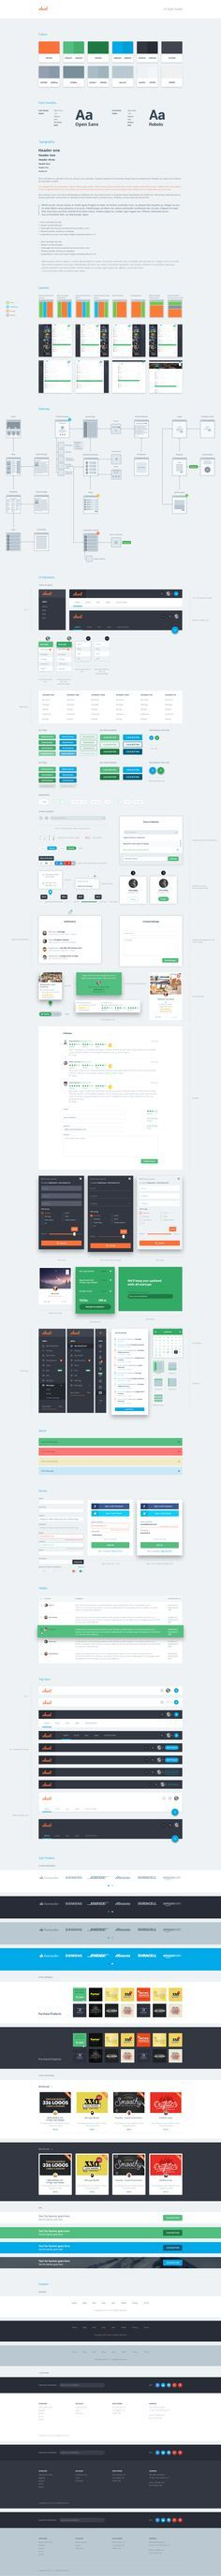 UI Style Guide